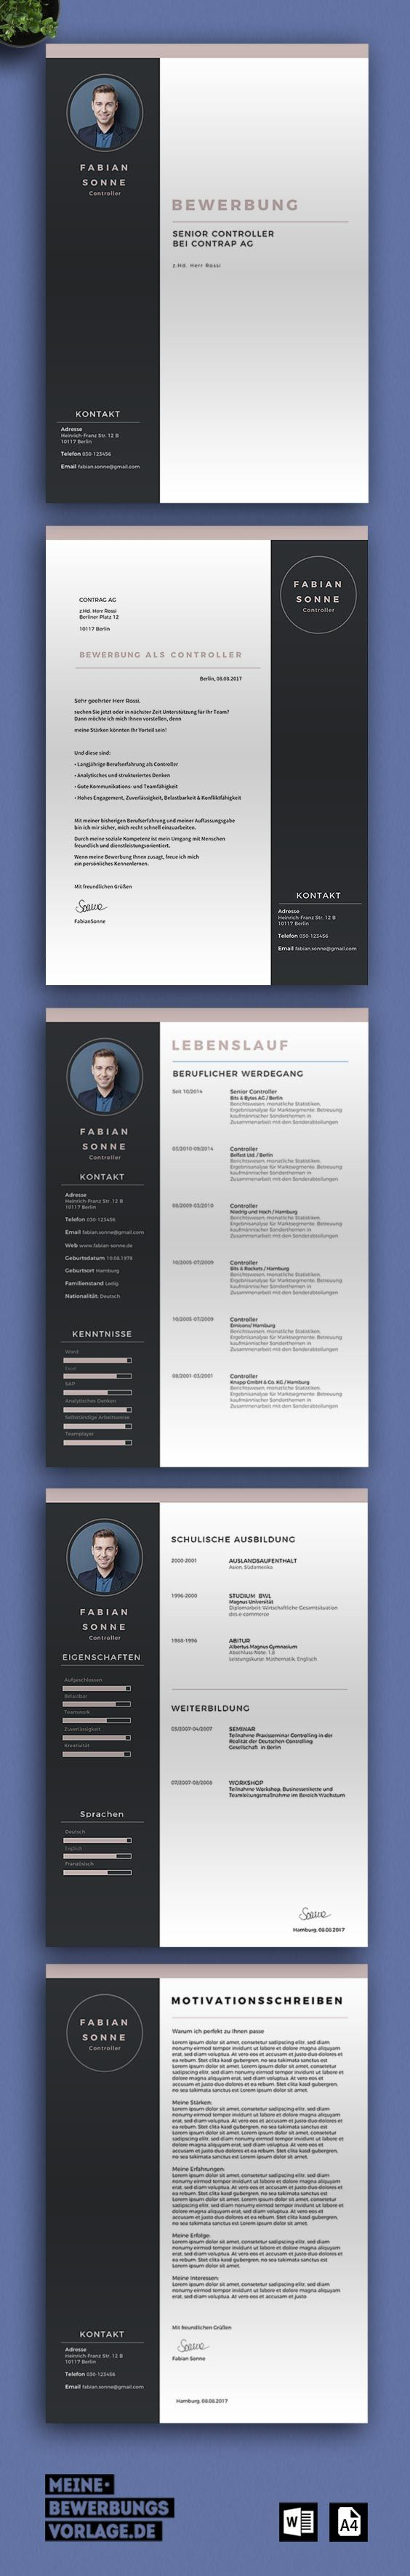 1484 best Резюме images on Pinterest | Cover letters, Resume and ...